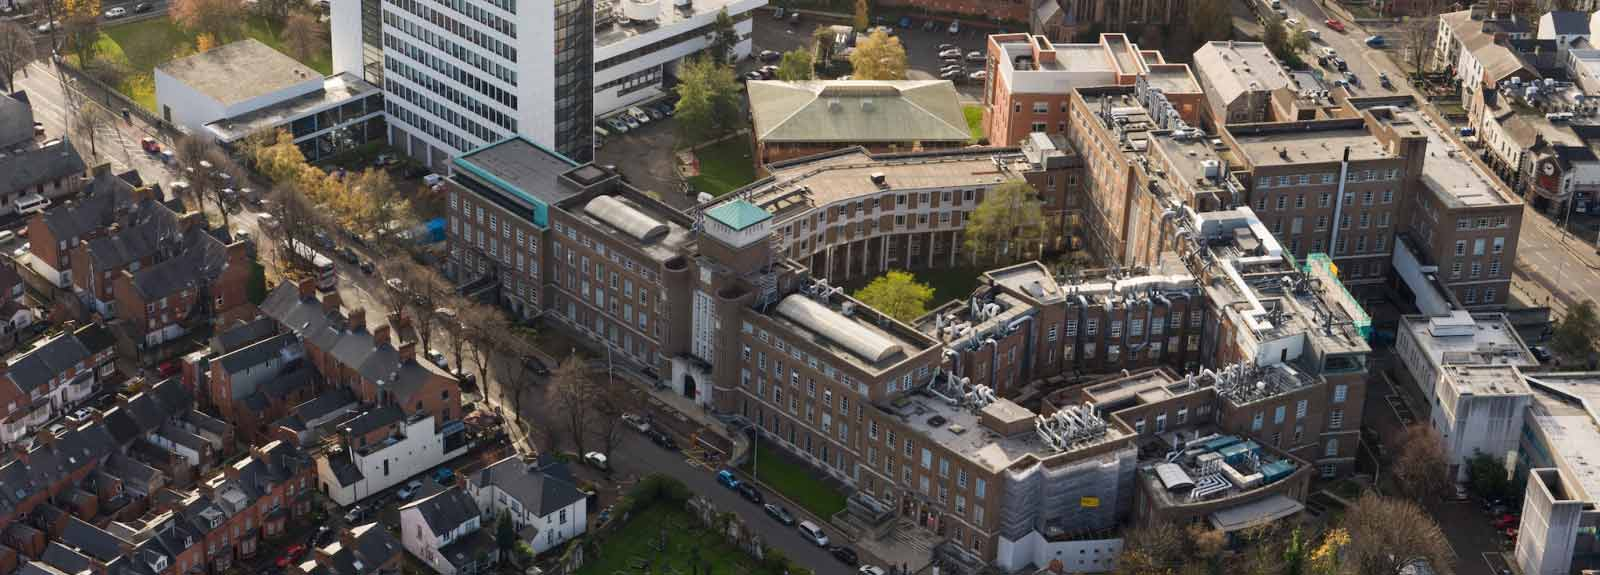 Arial photograph of the David Keir Building